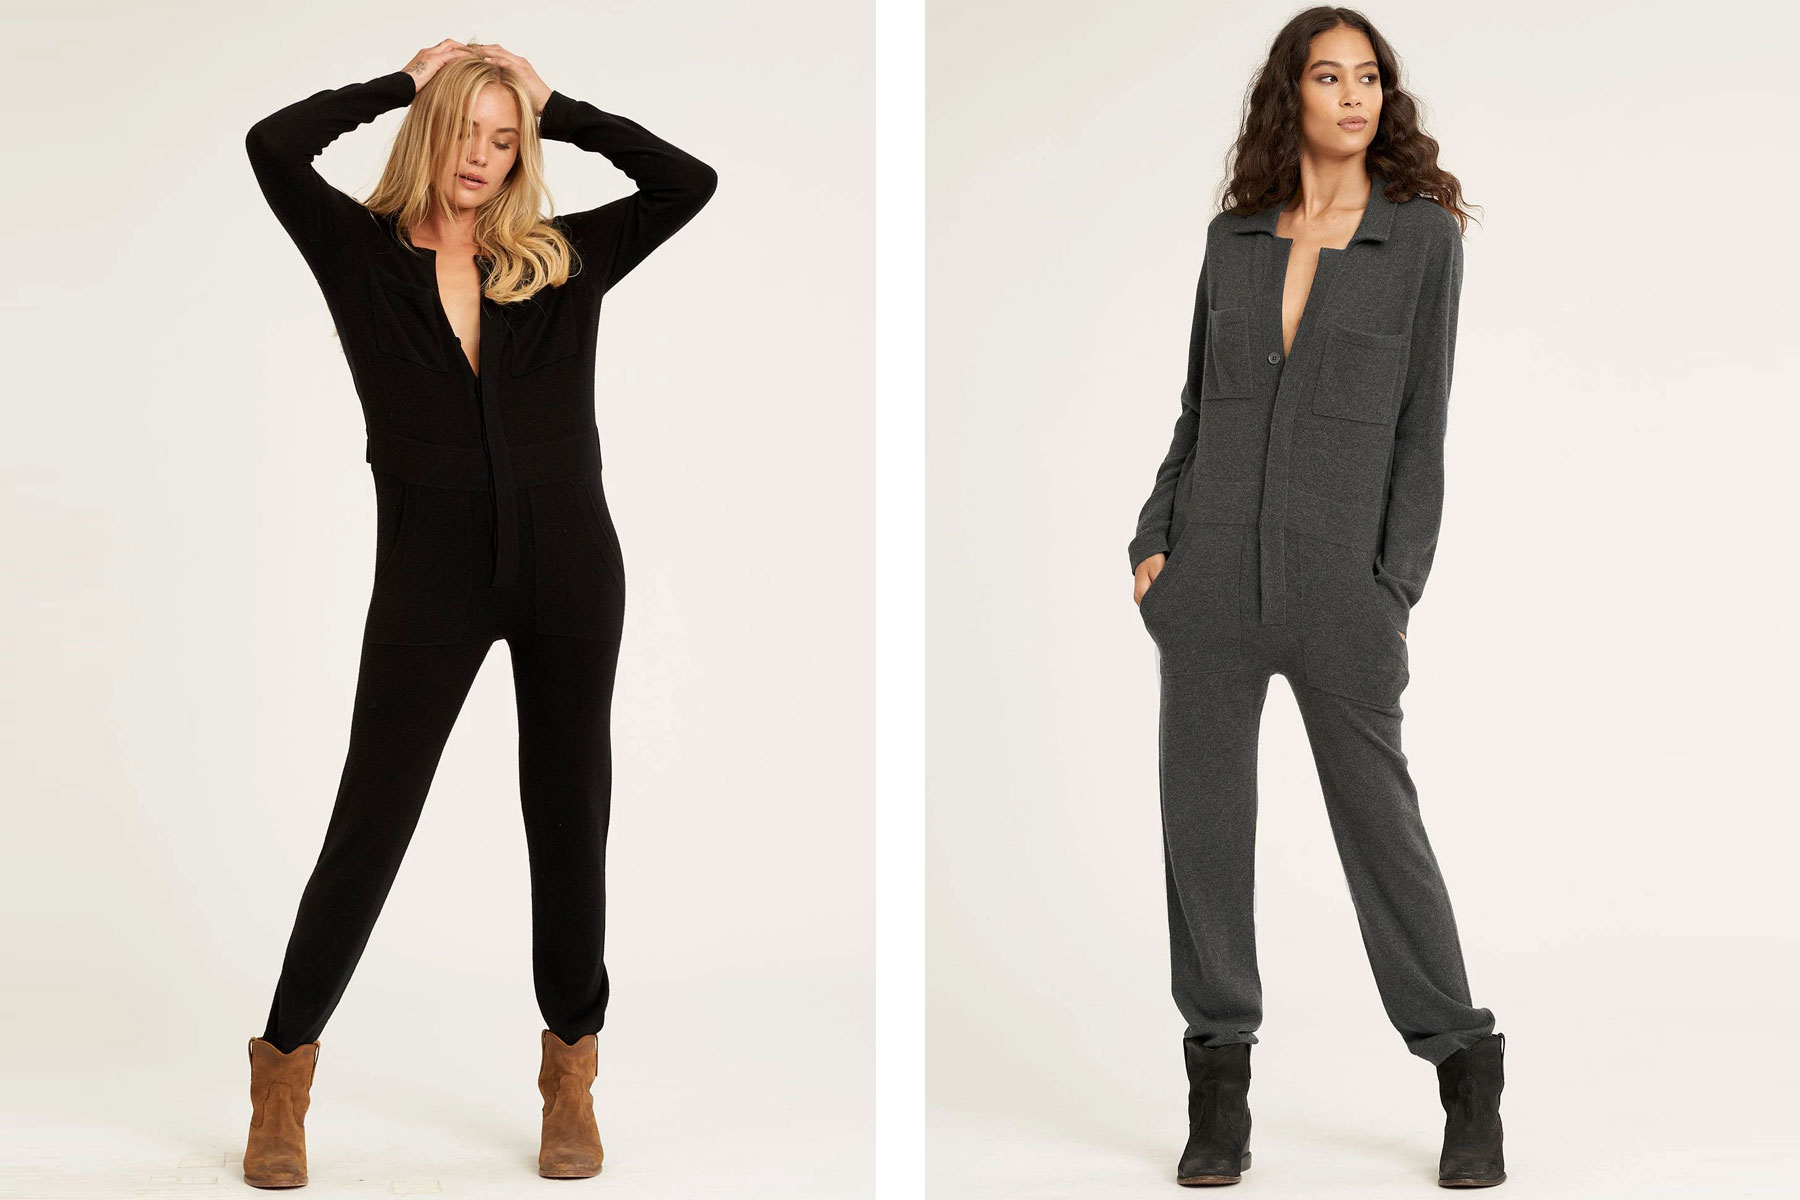 Women wearing black and grey cashmere jumpsuits